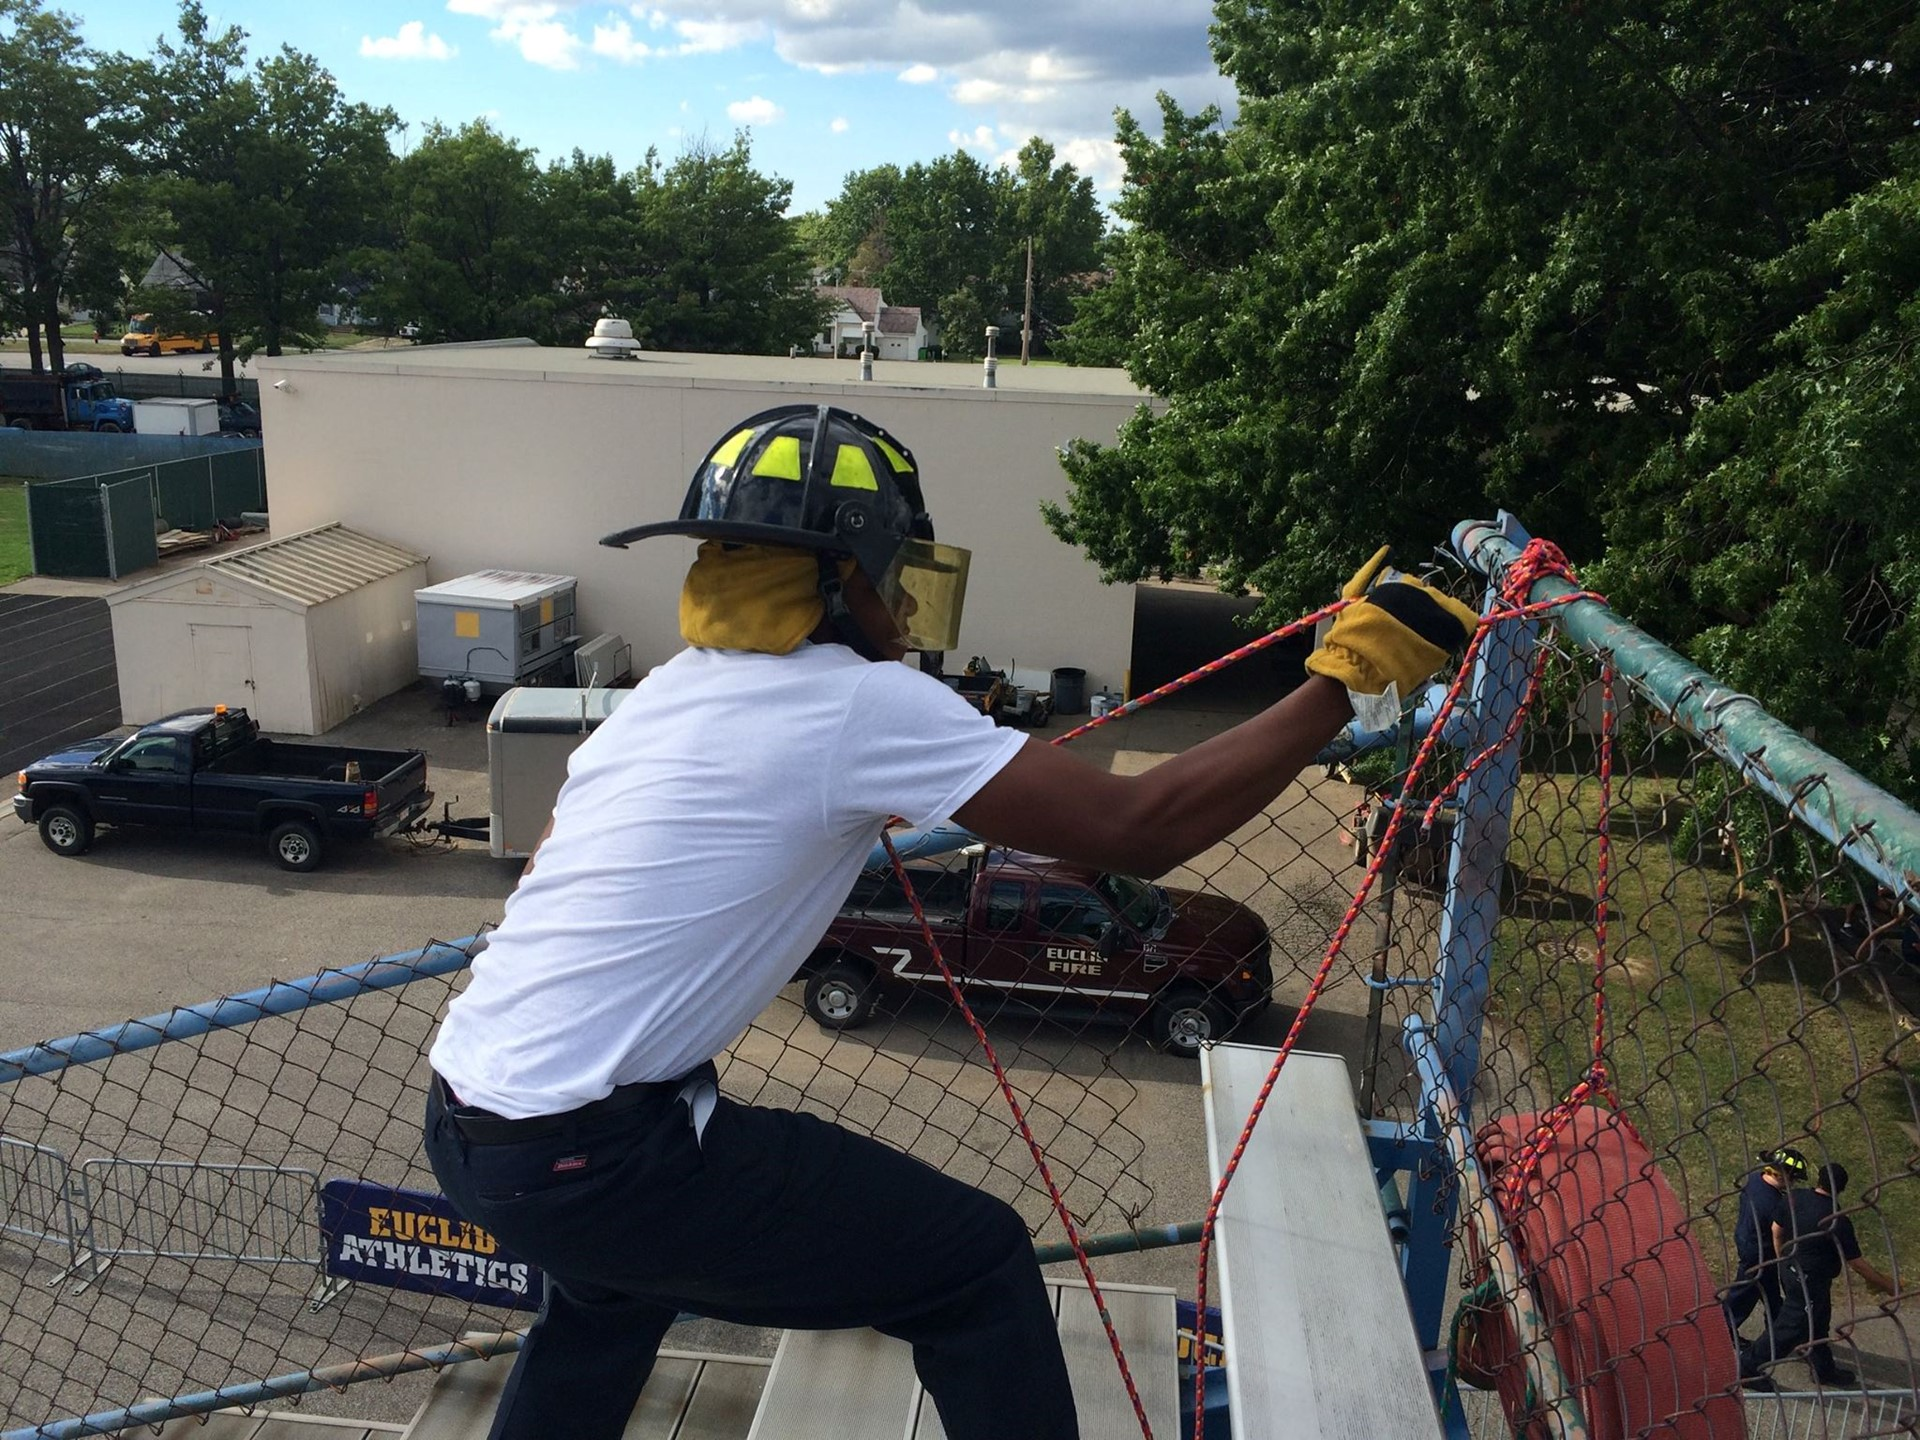 Fire Academy student doing a drill